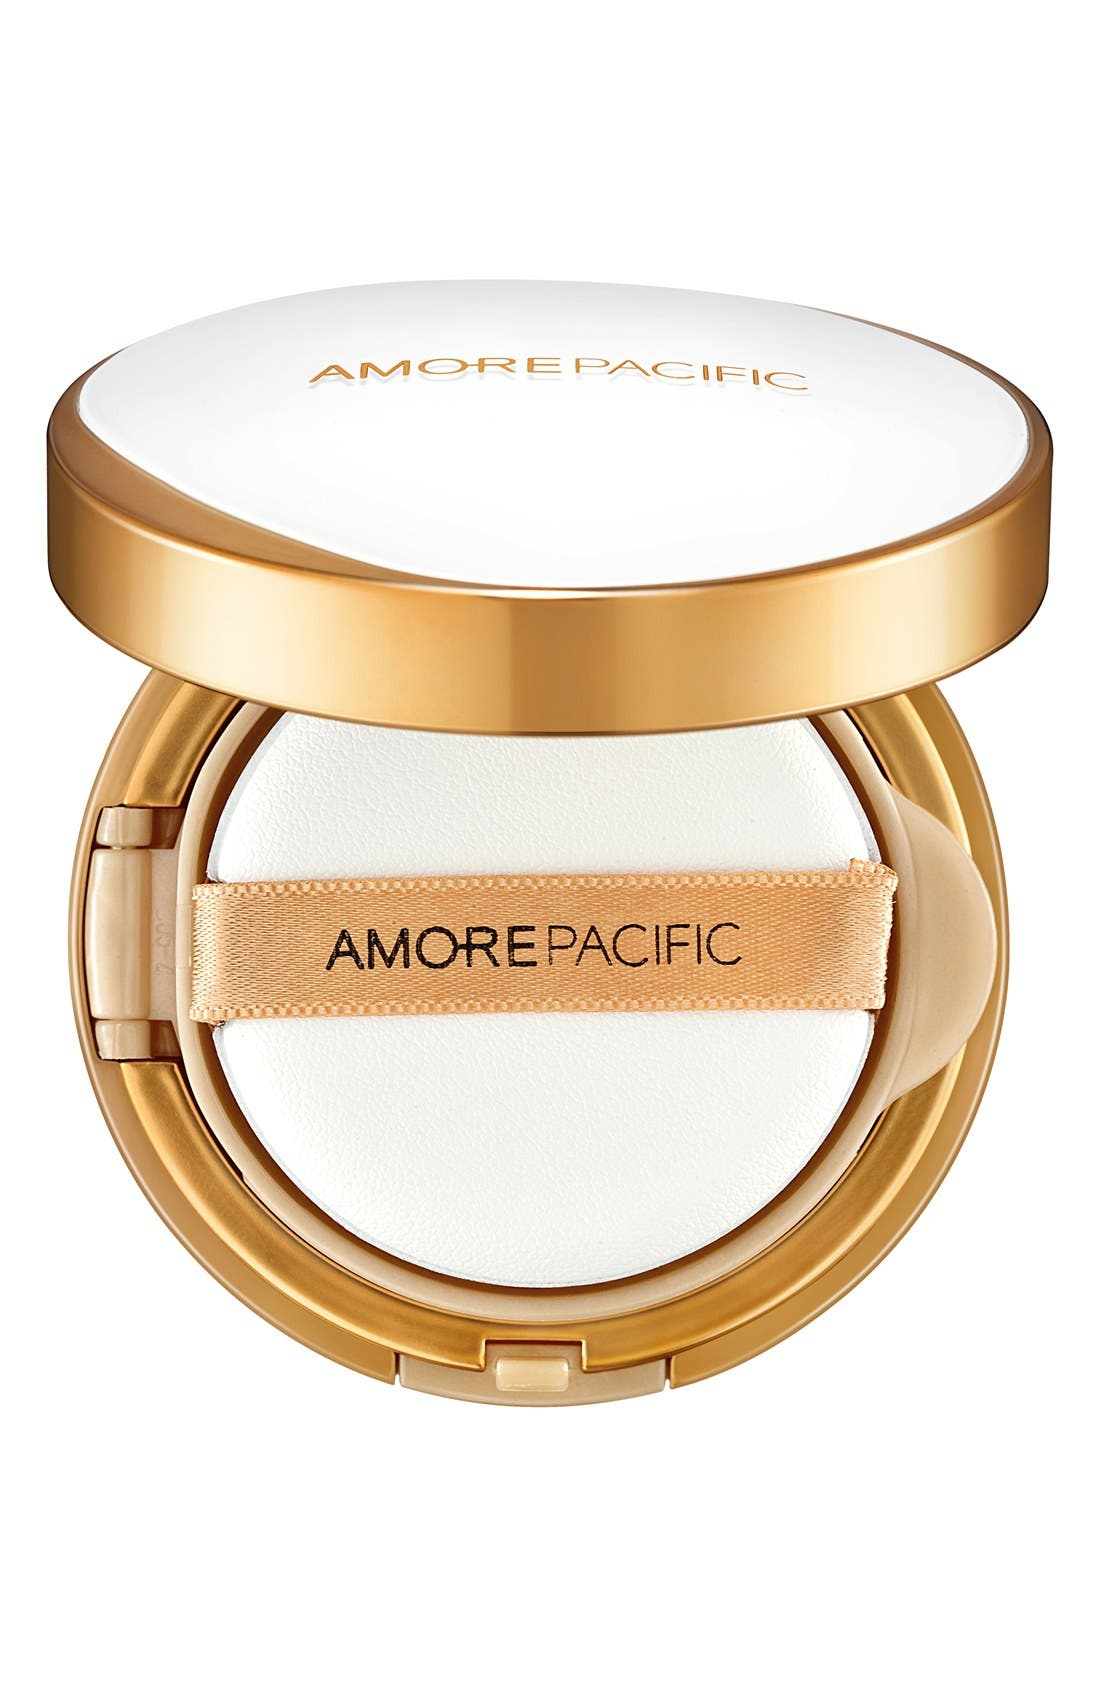 AMOREPACIFIC 'Resort' Sun Protection Cushion Broad Spectrum SPF 30+